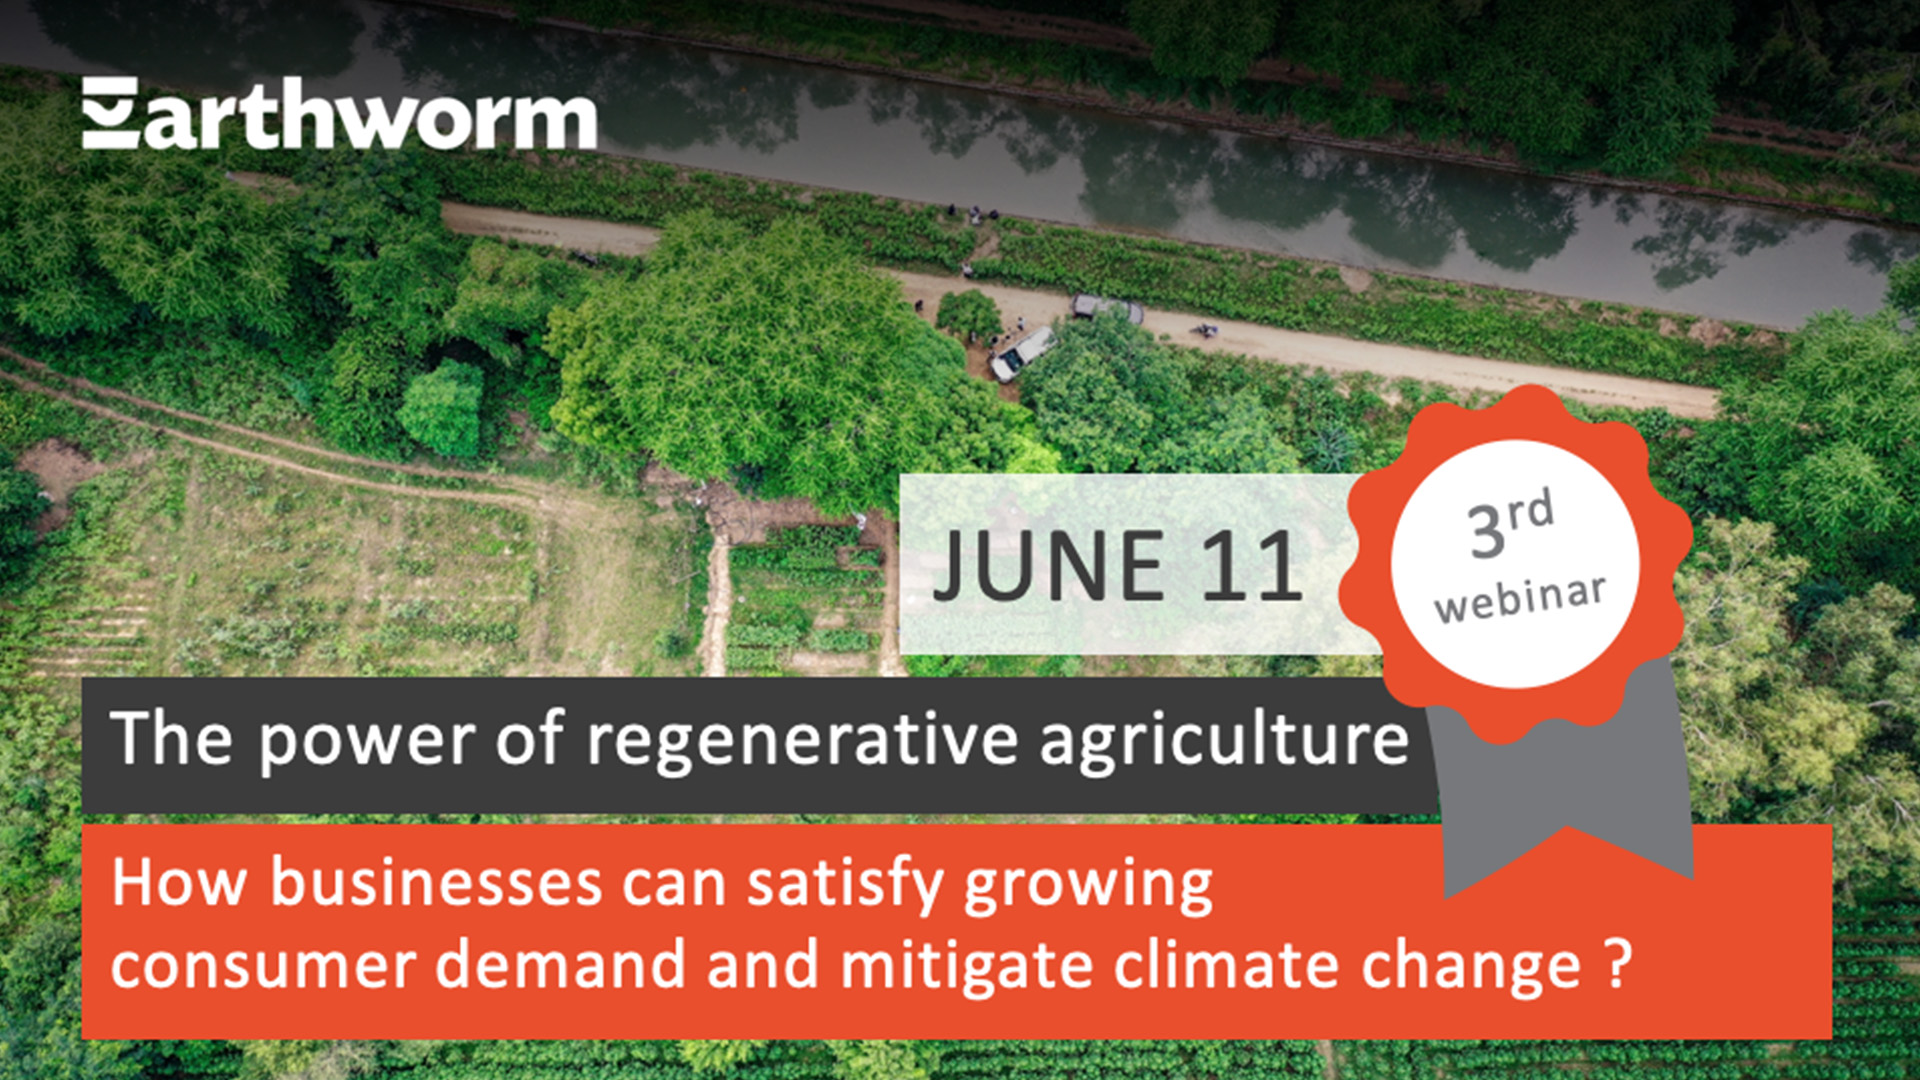 Webinar Earthworm Foundation – the power of regenerative agriculture: how businesses can satisfy growing consumer demand and mitigate climate change?